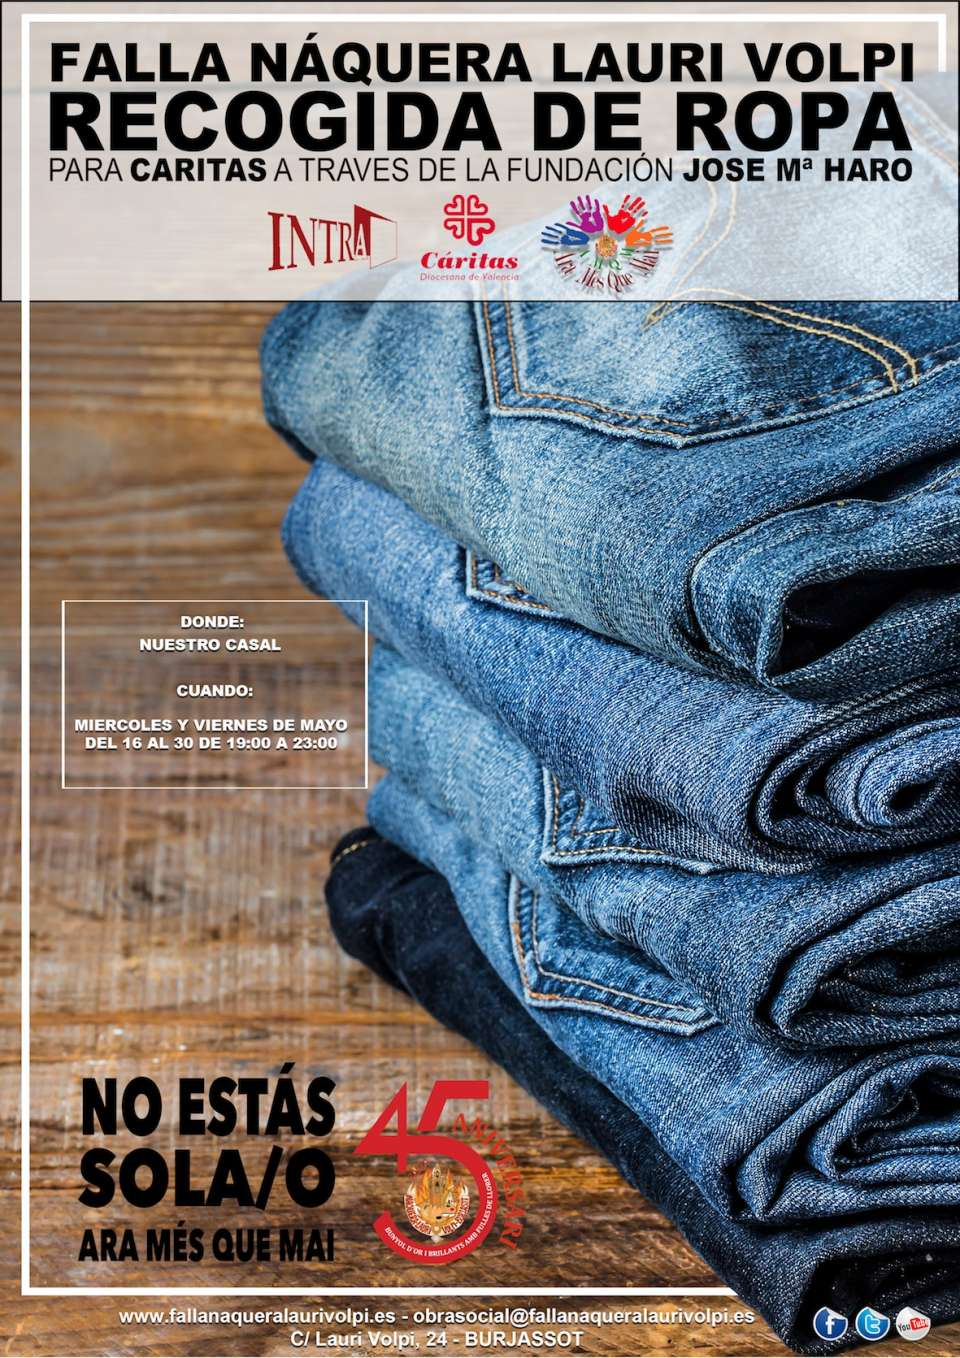 IX charity Campaign of collecting clothes of the Falla Naquera Lauri Volpi